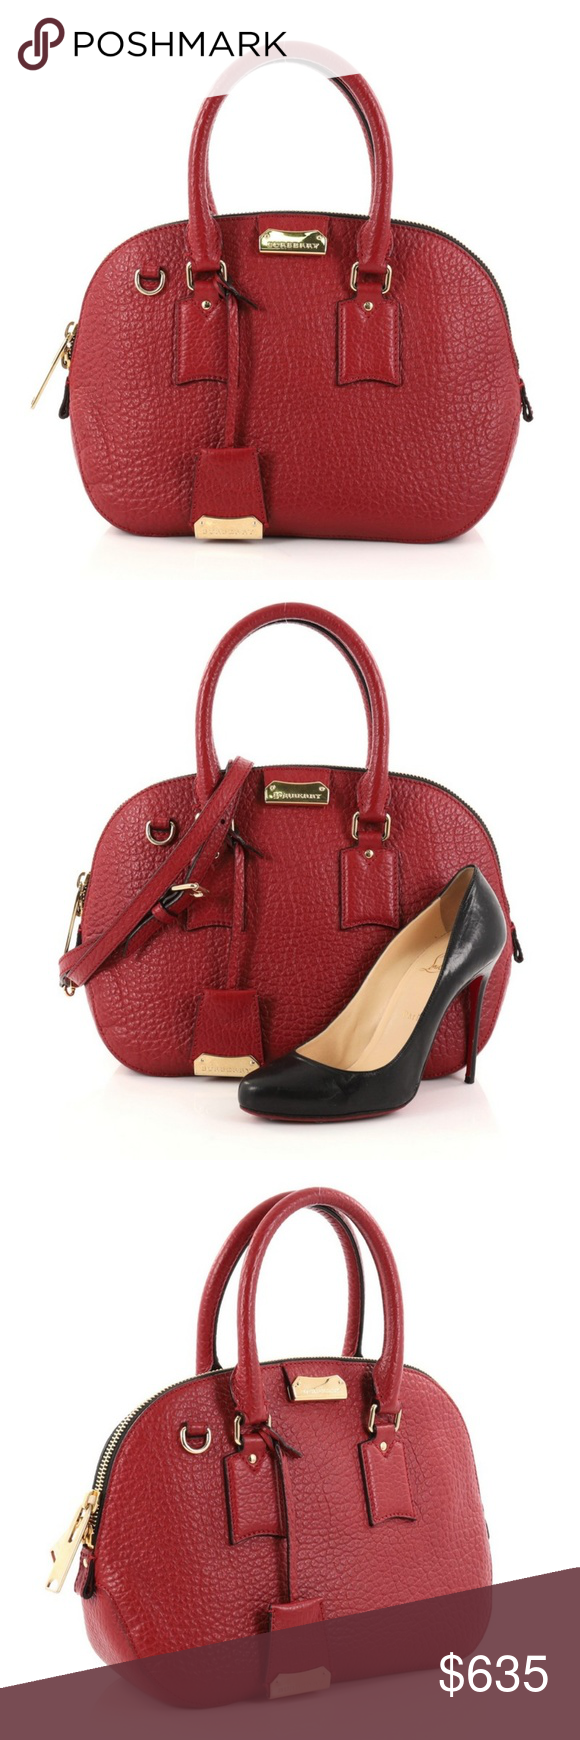 5779c387bef7 Burberry Orchard Bag Heritage Grained Leather Condition  Great. Small mark  on side